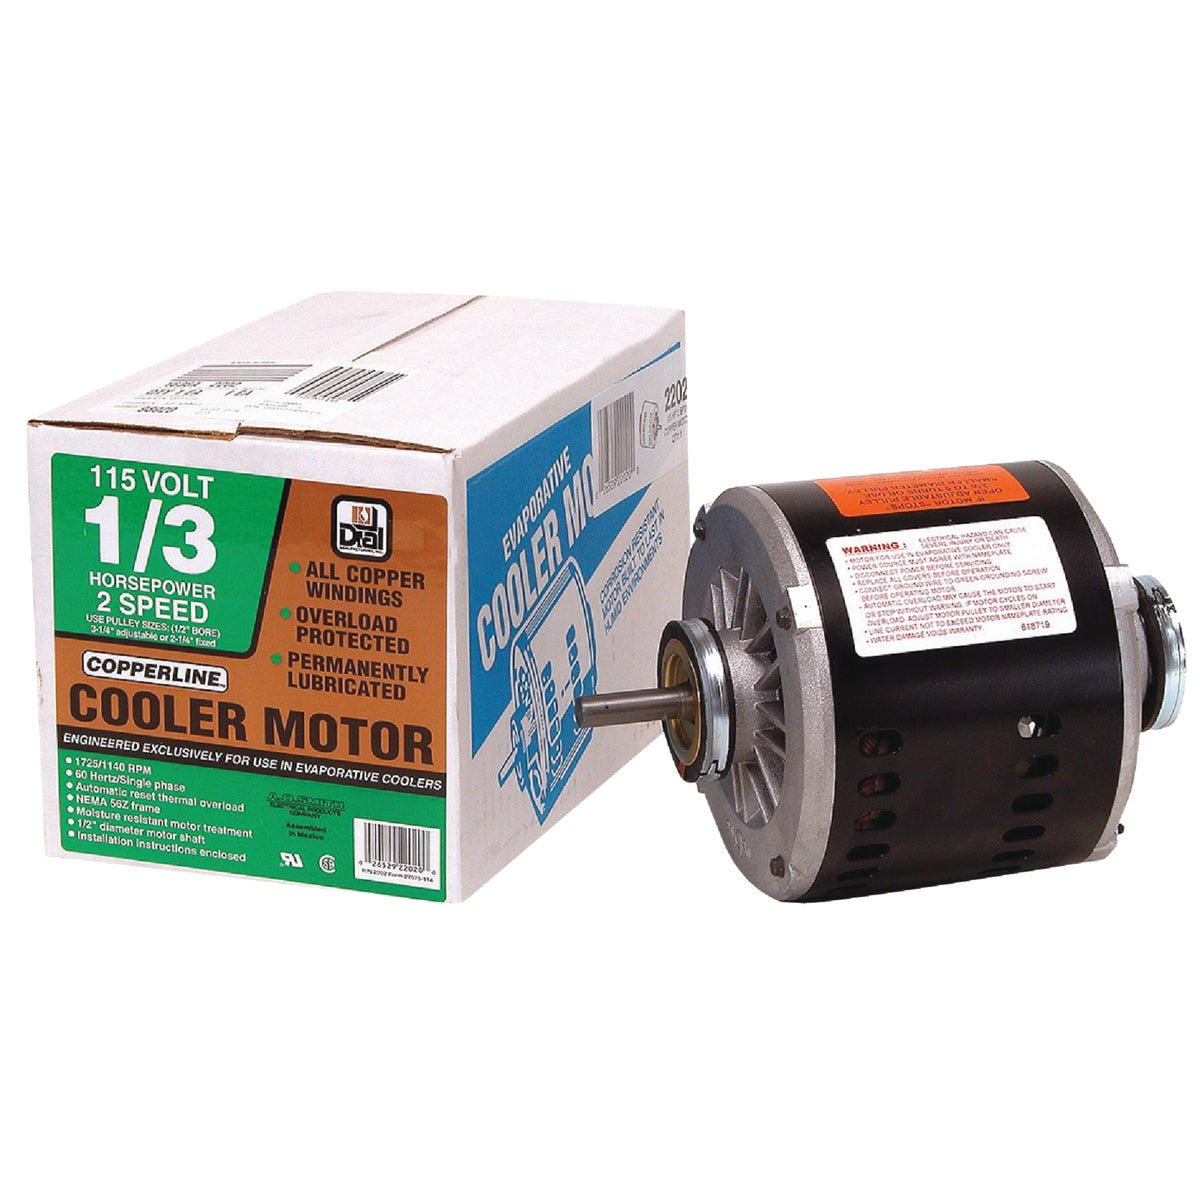 1/3HP 2 SPEED MOTOR - 2202 by Dial Manufacturing